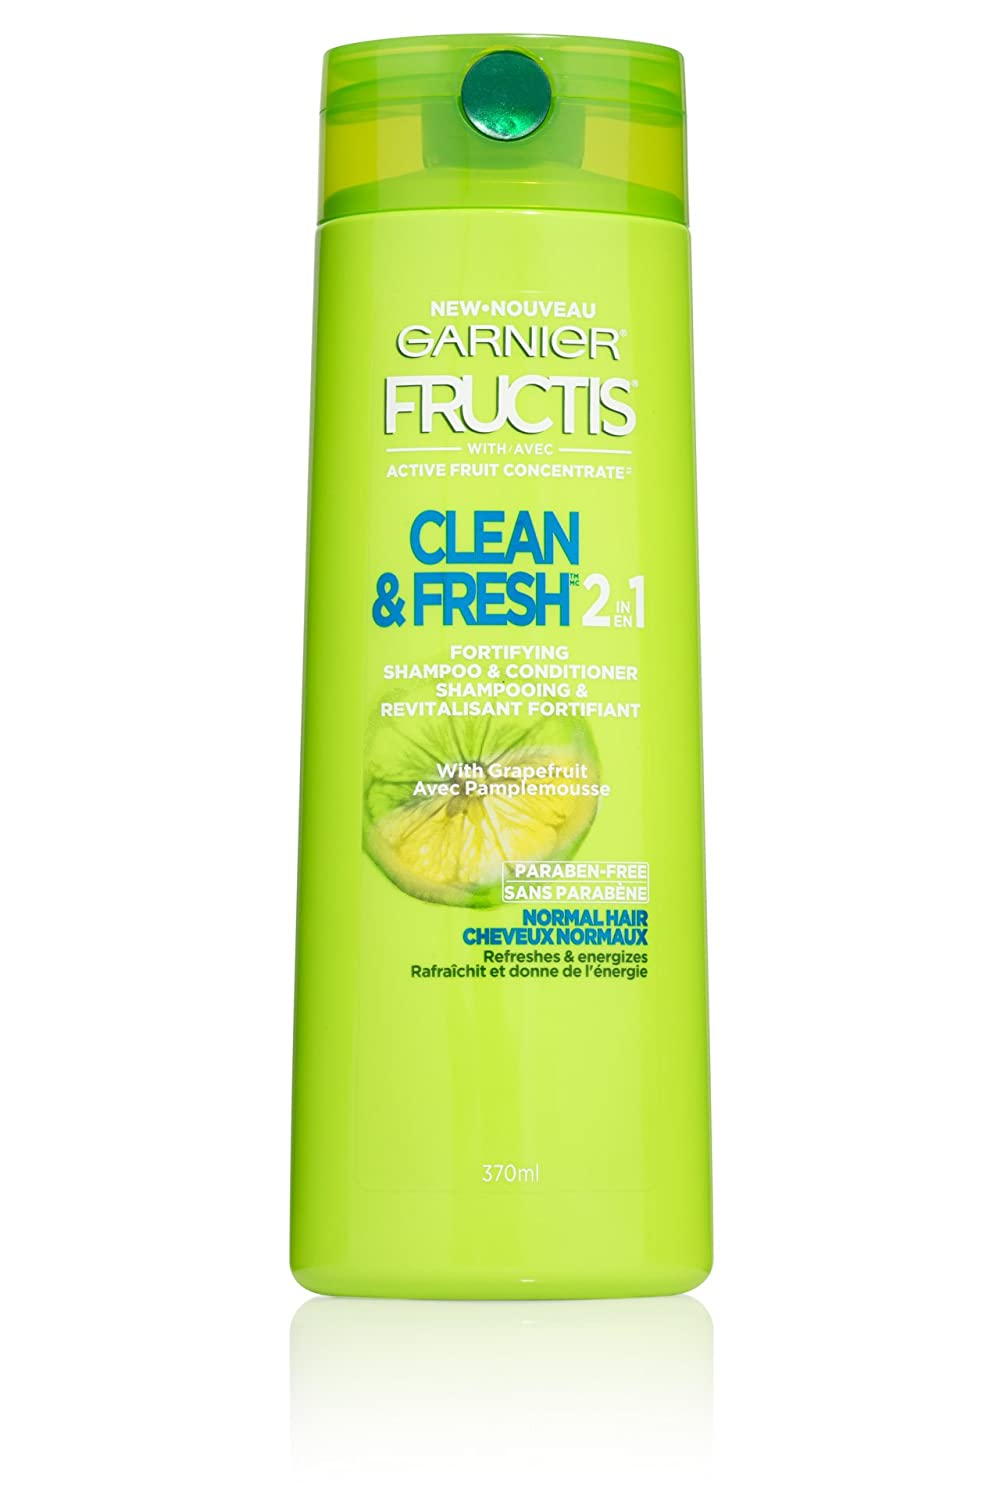 Garnier Hair Care Fructis Daily Care 2-in-1 Shampoo and Conditioner, 12.5 F